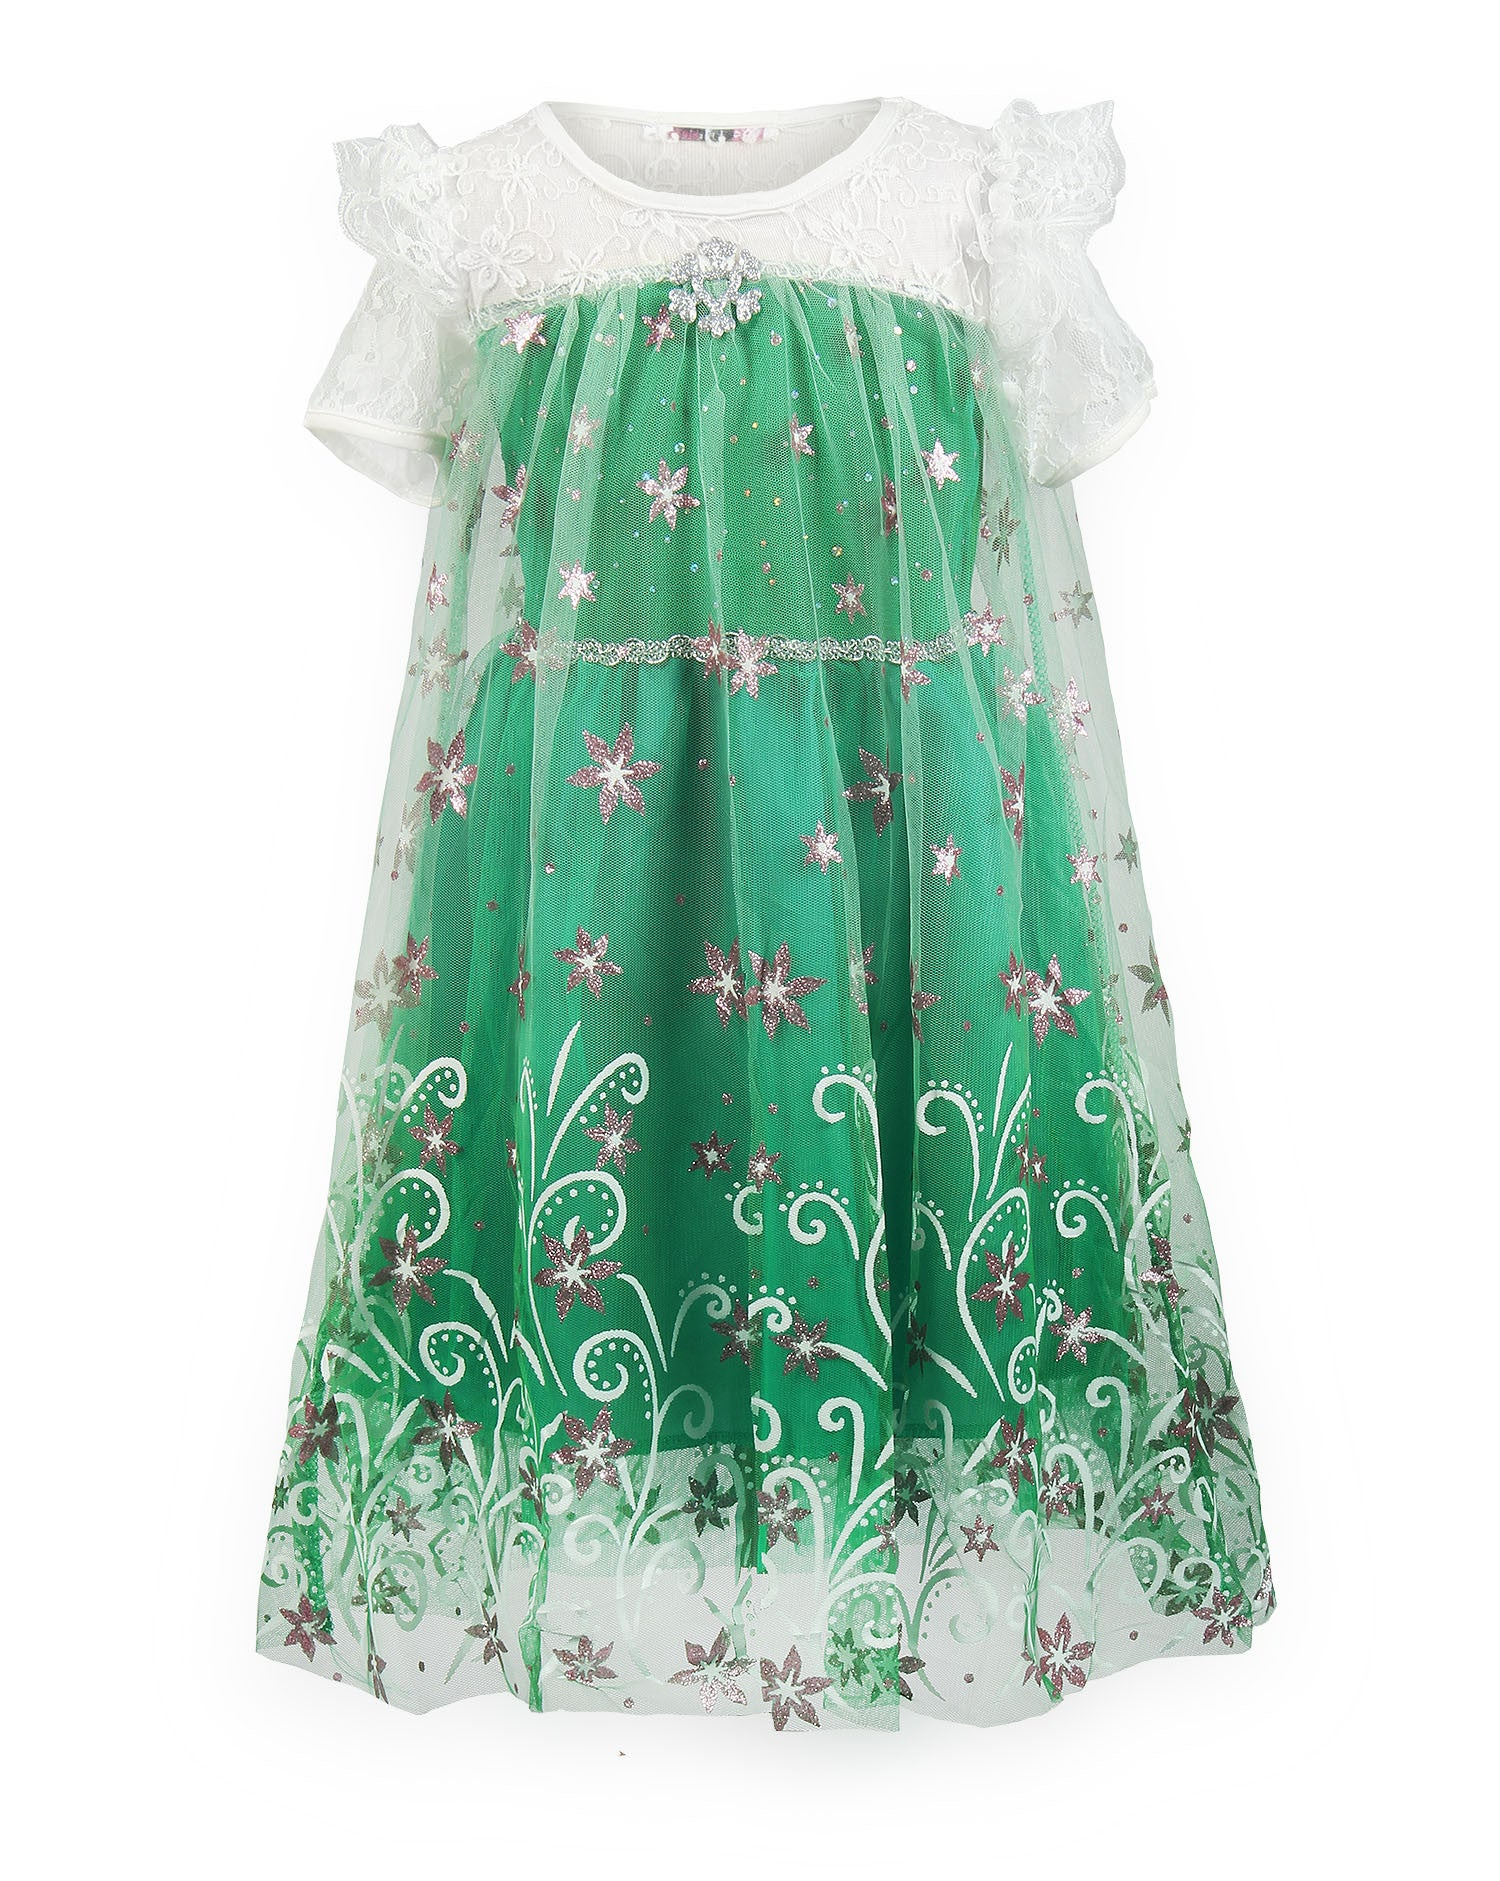 jerrisapparel green girls christmas party dress